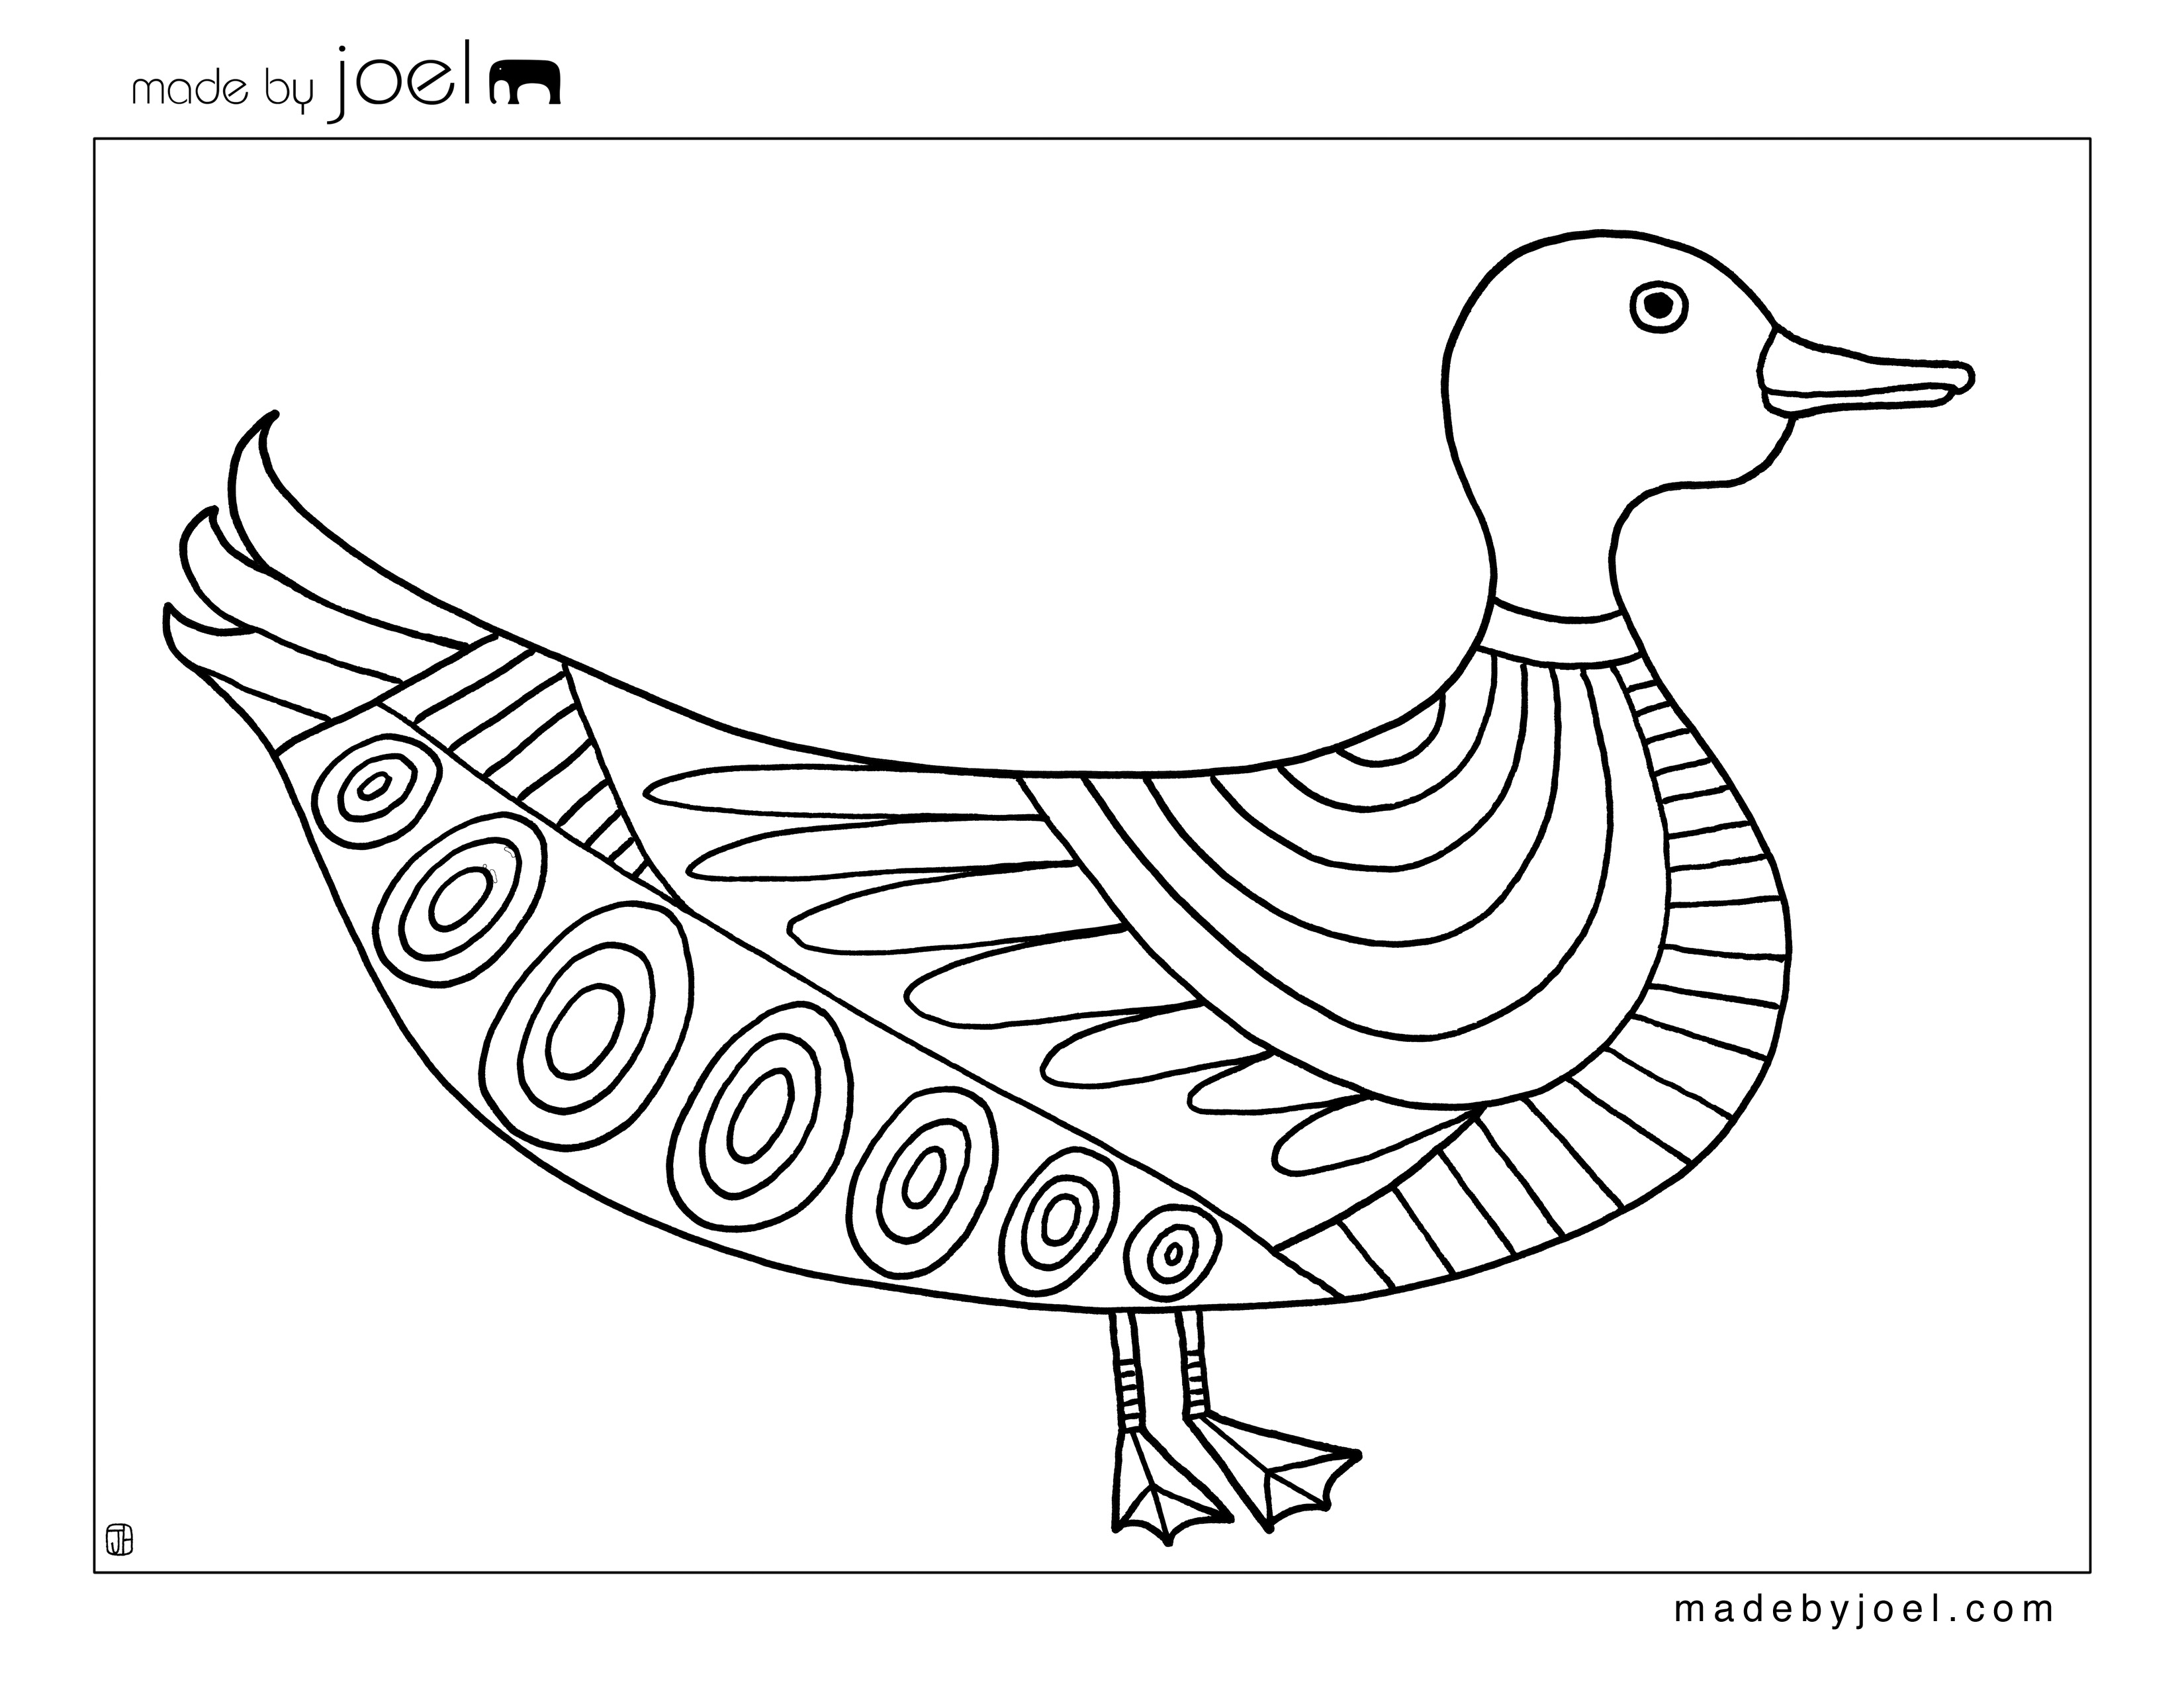 Co coloring book page template - Co Coloring Pages For 2 Year Olds Duck And Goat Coloring Sheets